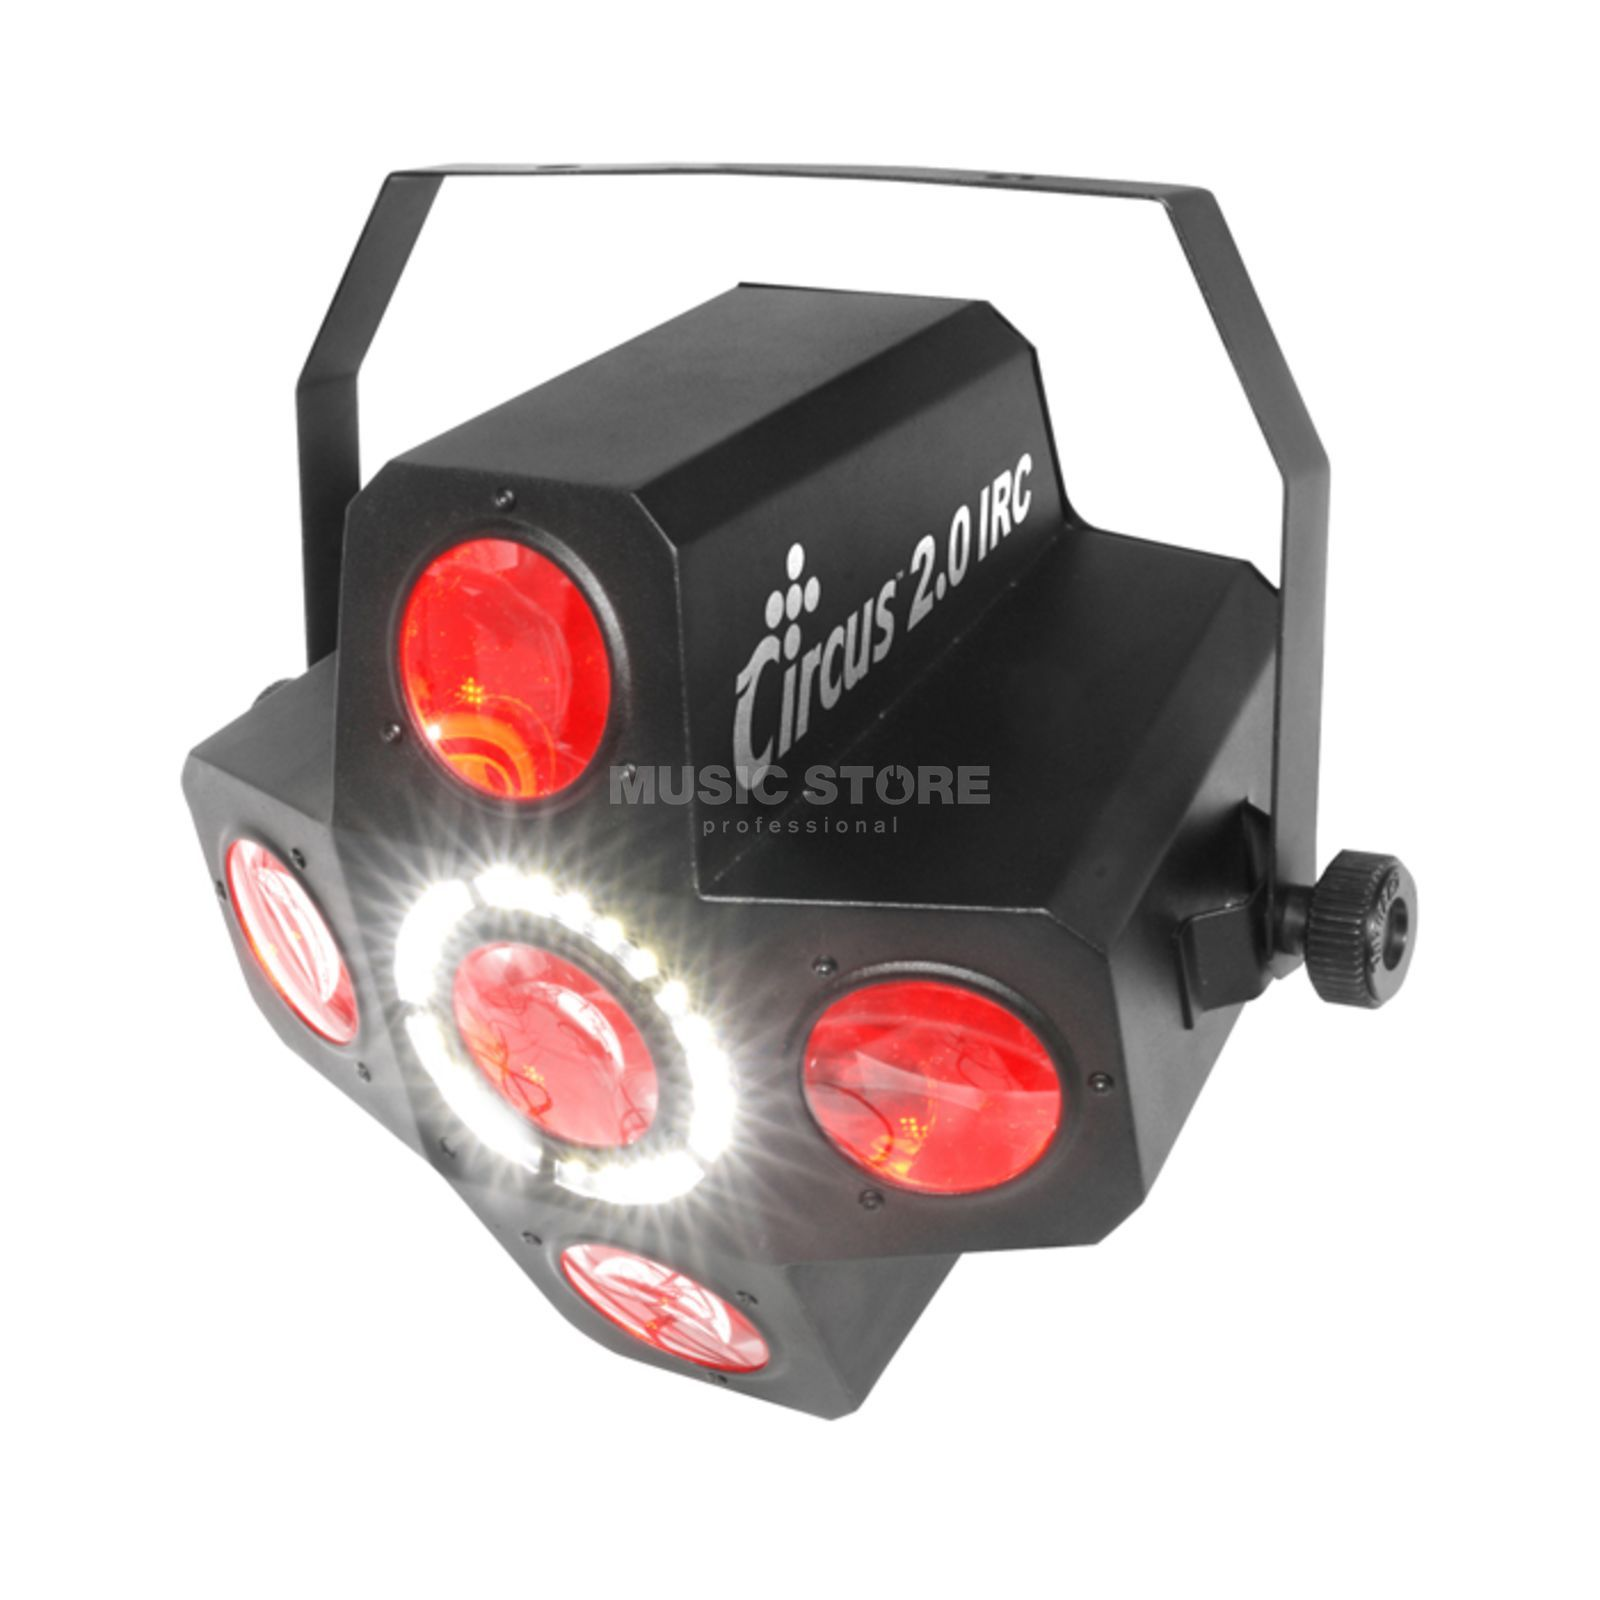 Chauvet DJ Circus 2.0 IRC 320 LEDs (RGBAW) 0,25W Produktbillede